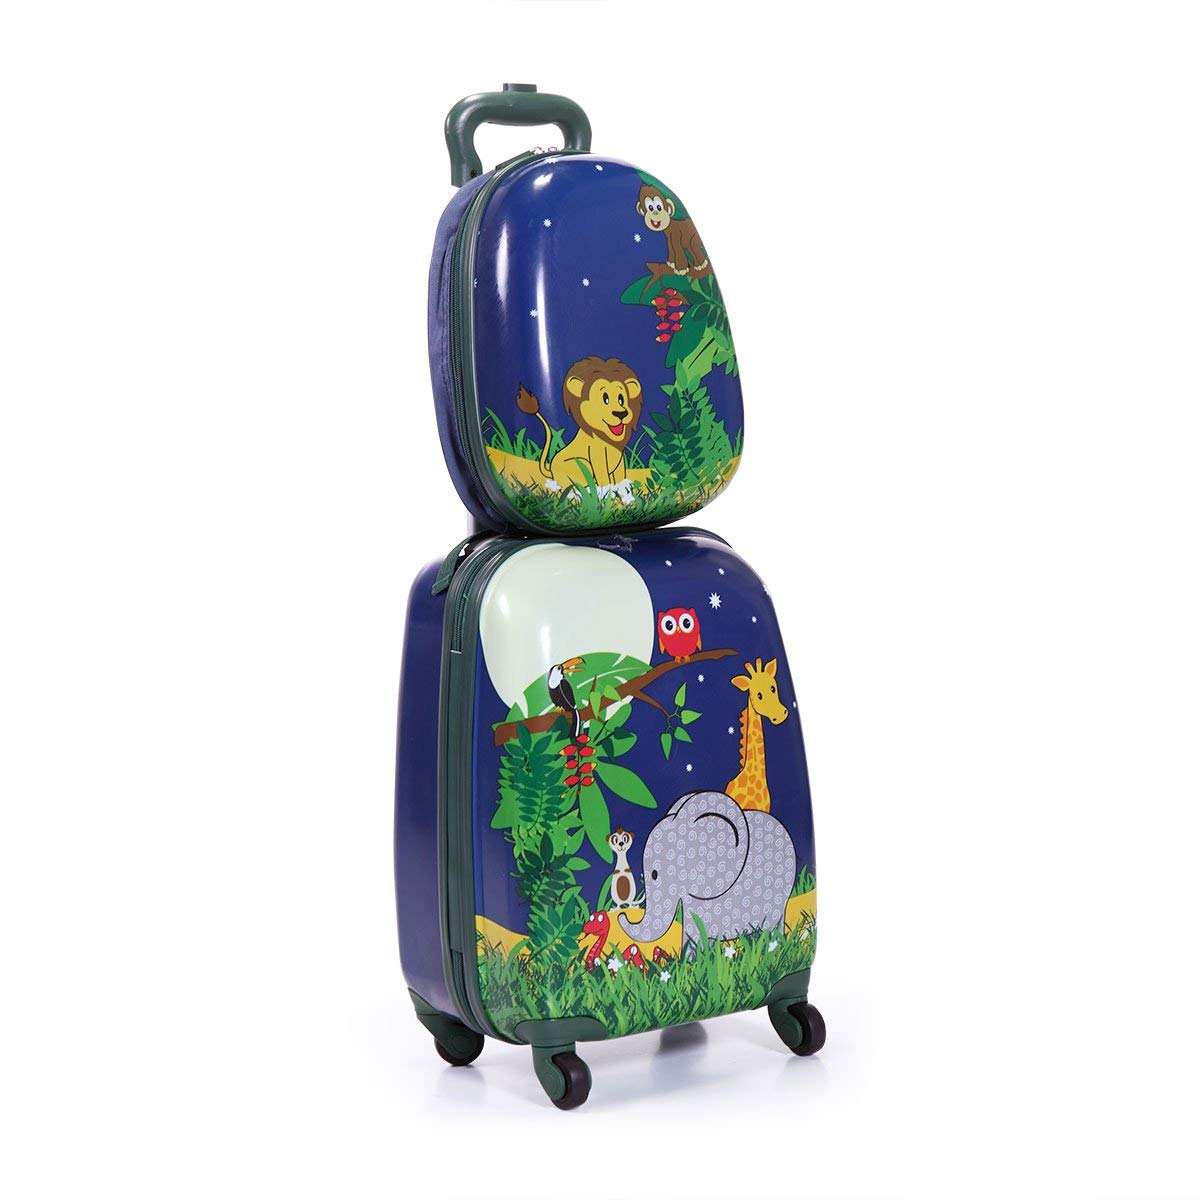 2f6cd1ed7728 Cheap Kids Hard Luggage, find Kids Hard Luggage deals on line at ...